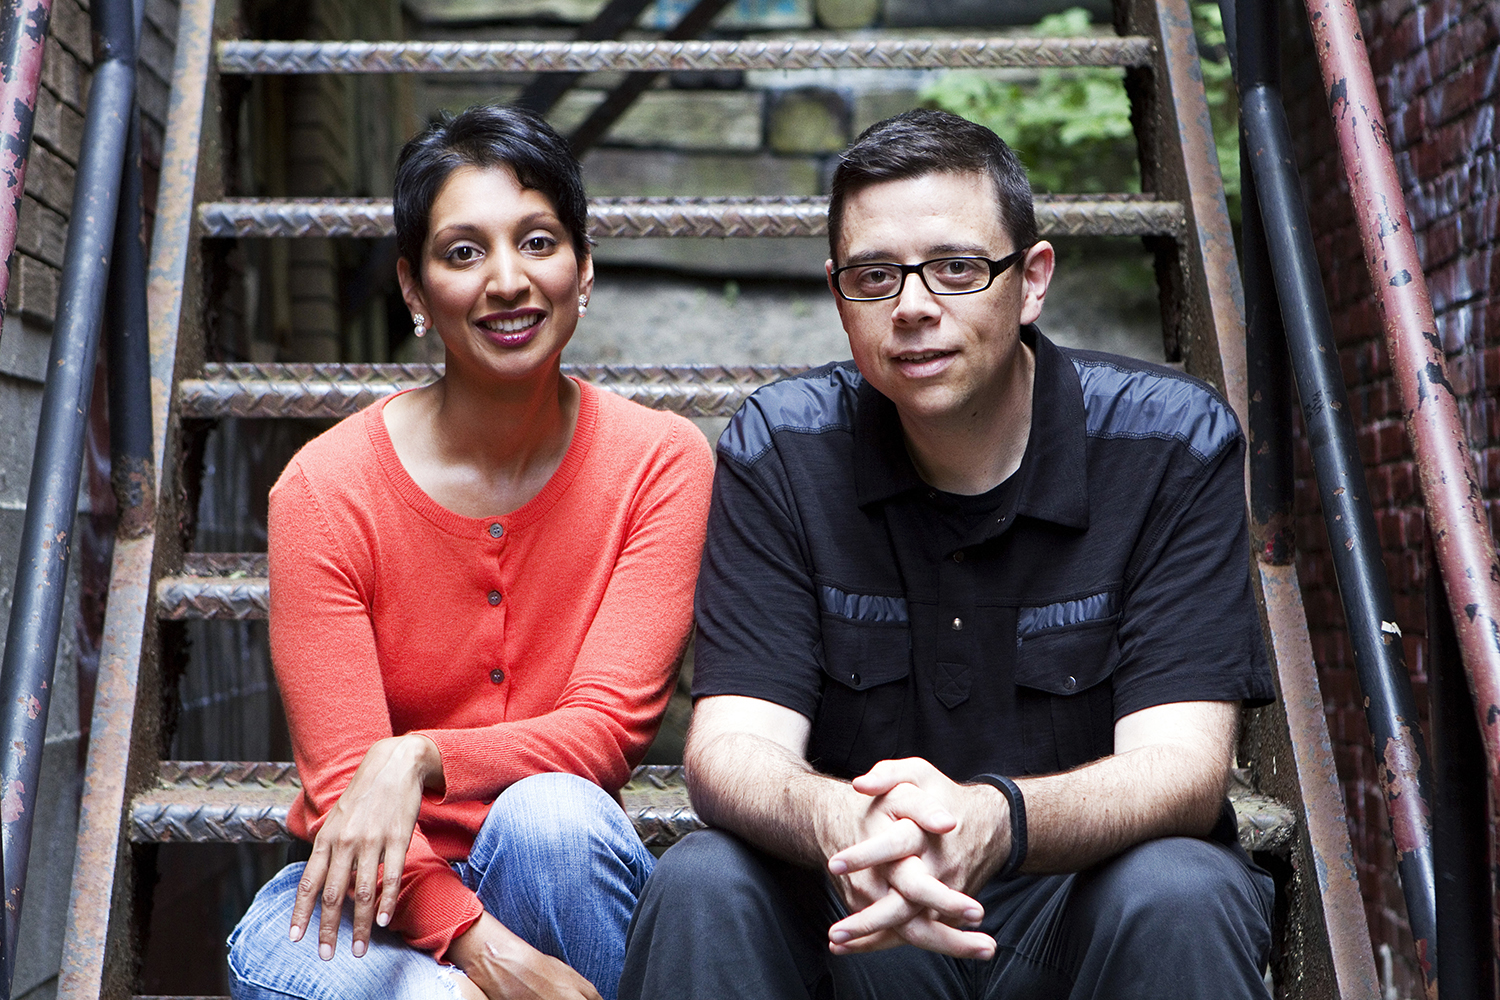 PHOTO CREDIT: Above photo of Aron Gaudet and Gita Pullapilly, directors of Beneath The Harvest Sky, is from  here  .